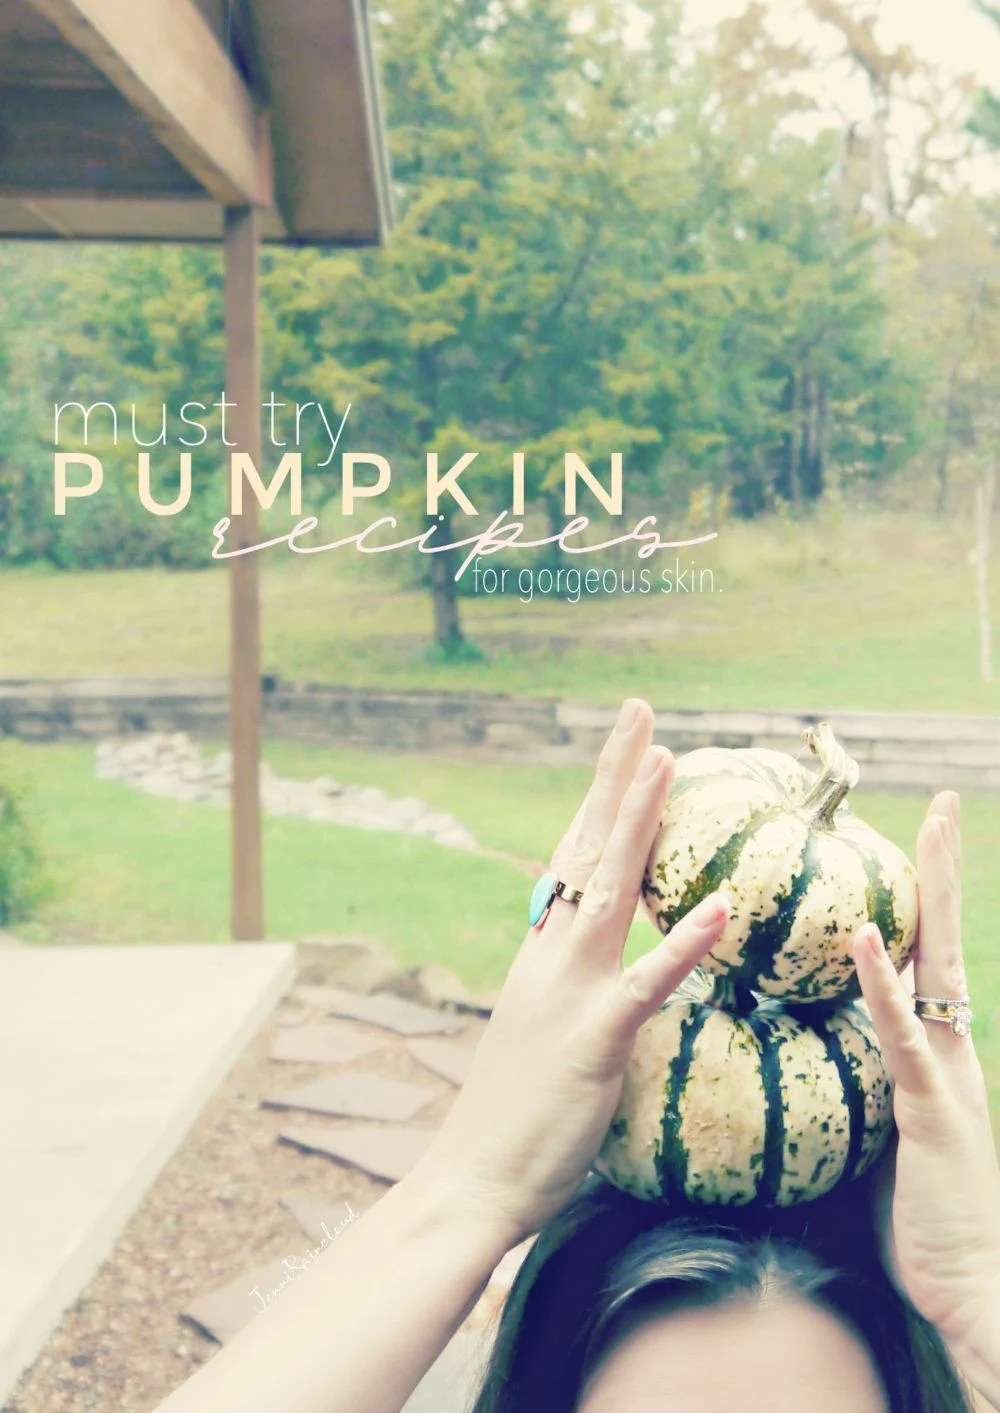 Must Try Pumpkin Recipes for Gorgeous Skin.